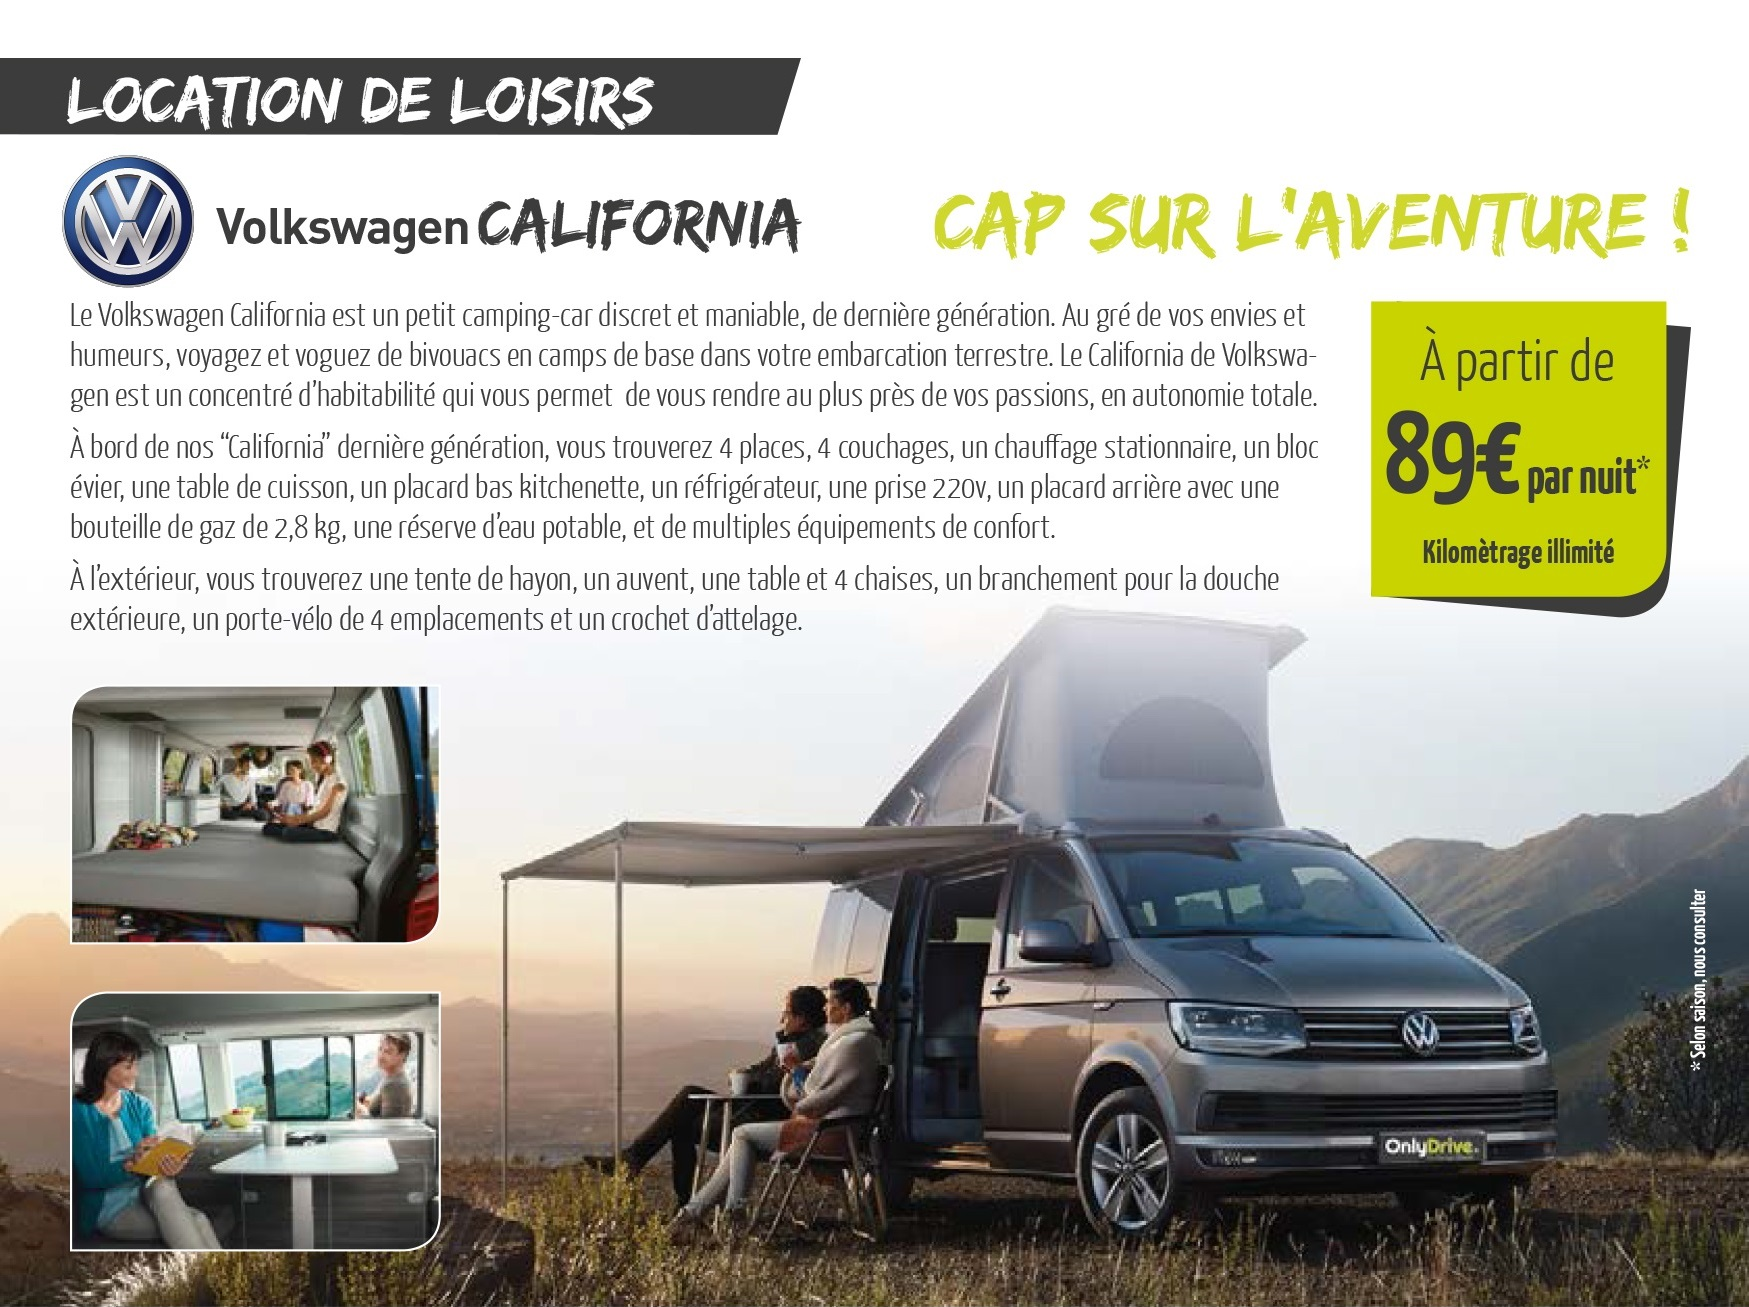 Location d'un Volkswagen California 4 places 4 couchages à saint Fulgent en Vendée, Garage David Onlydrive.fr